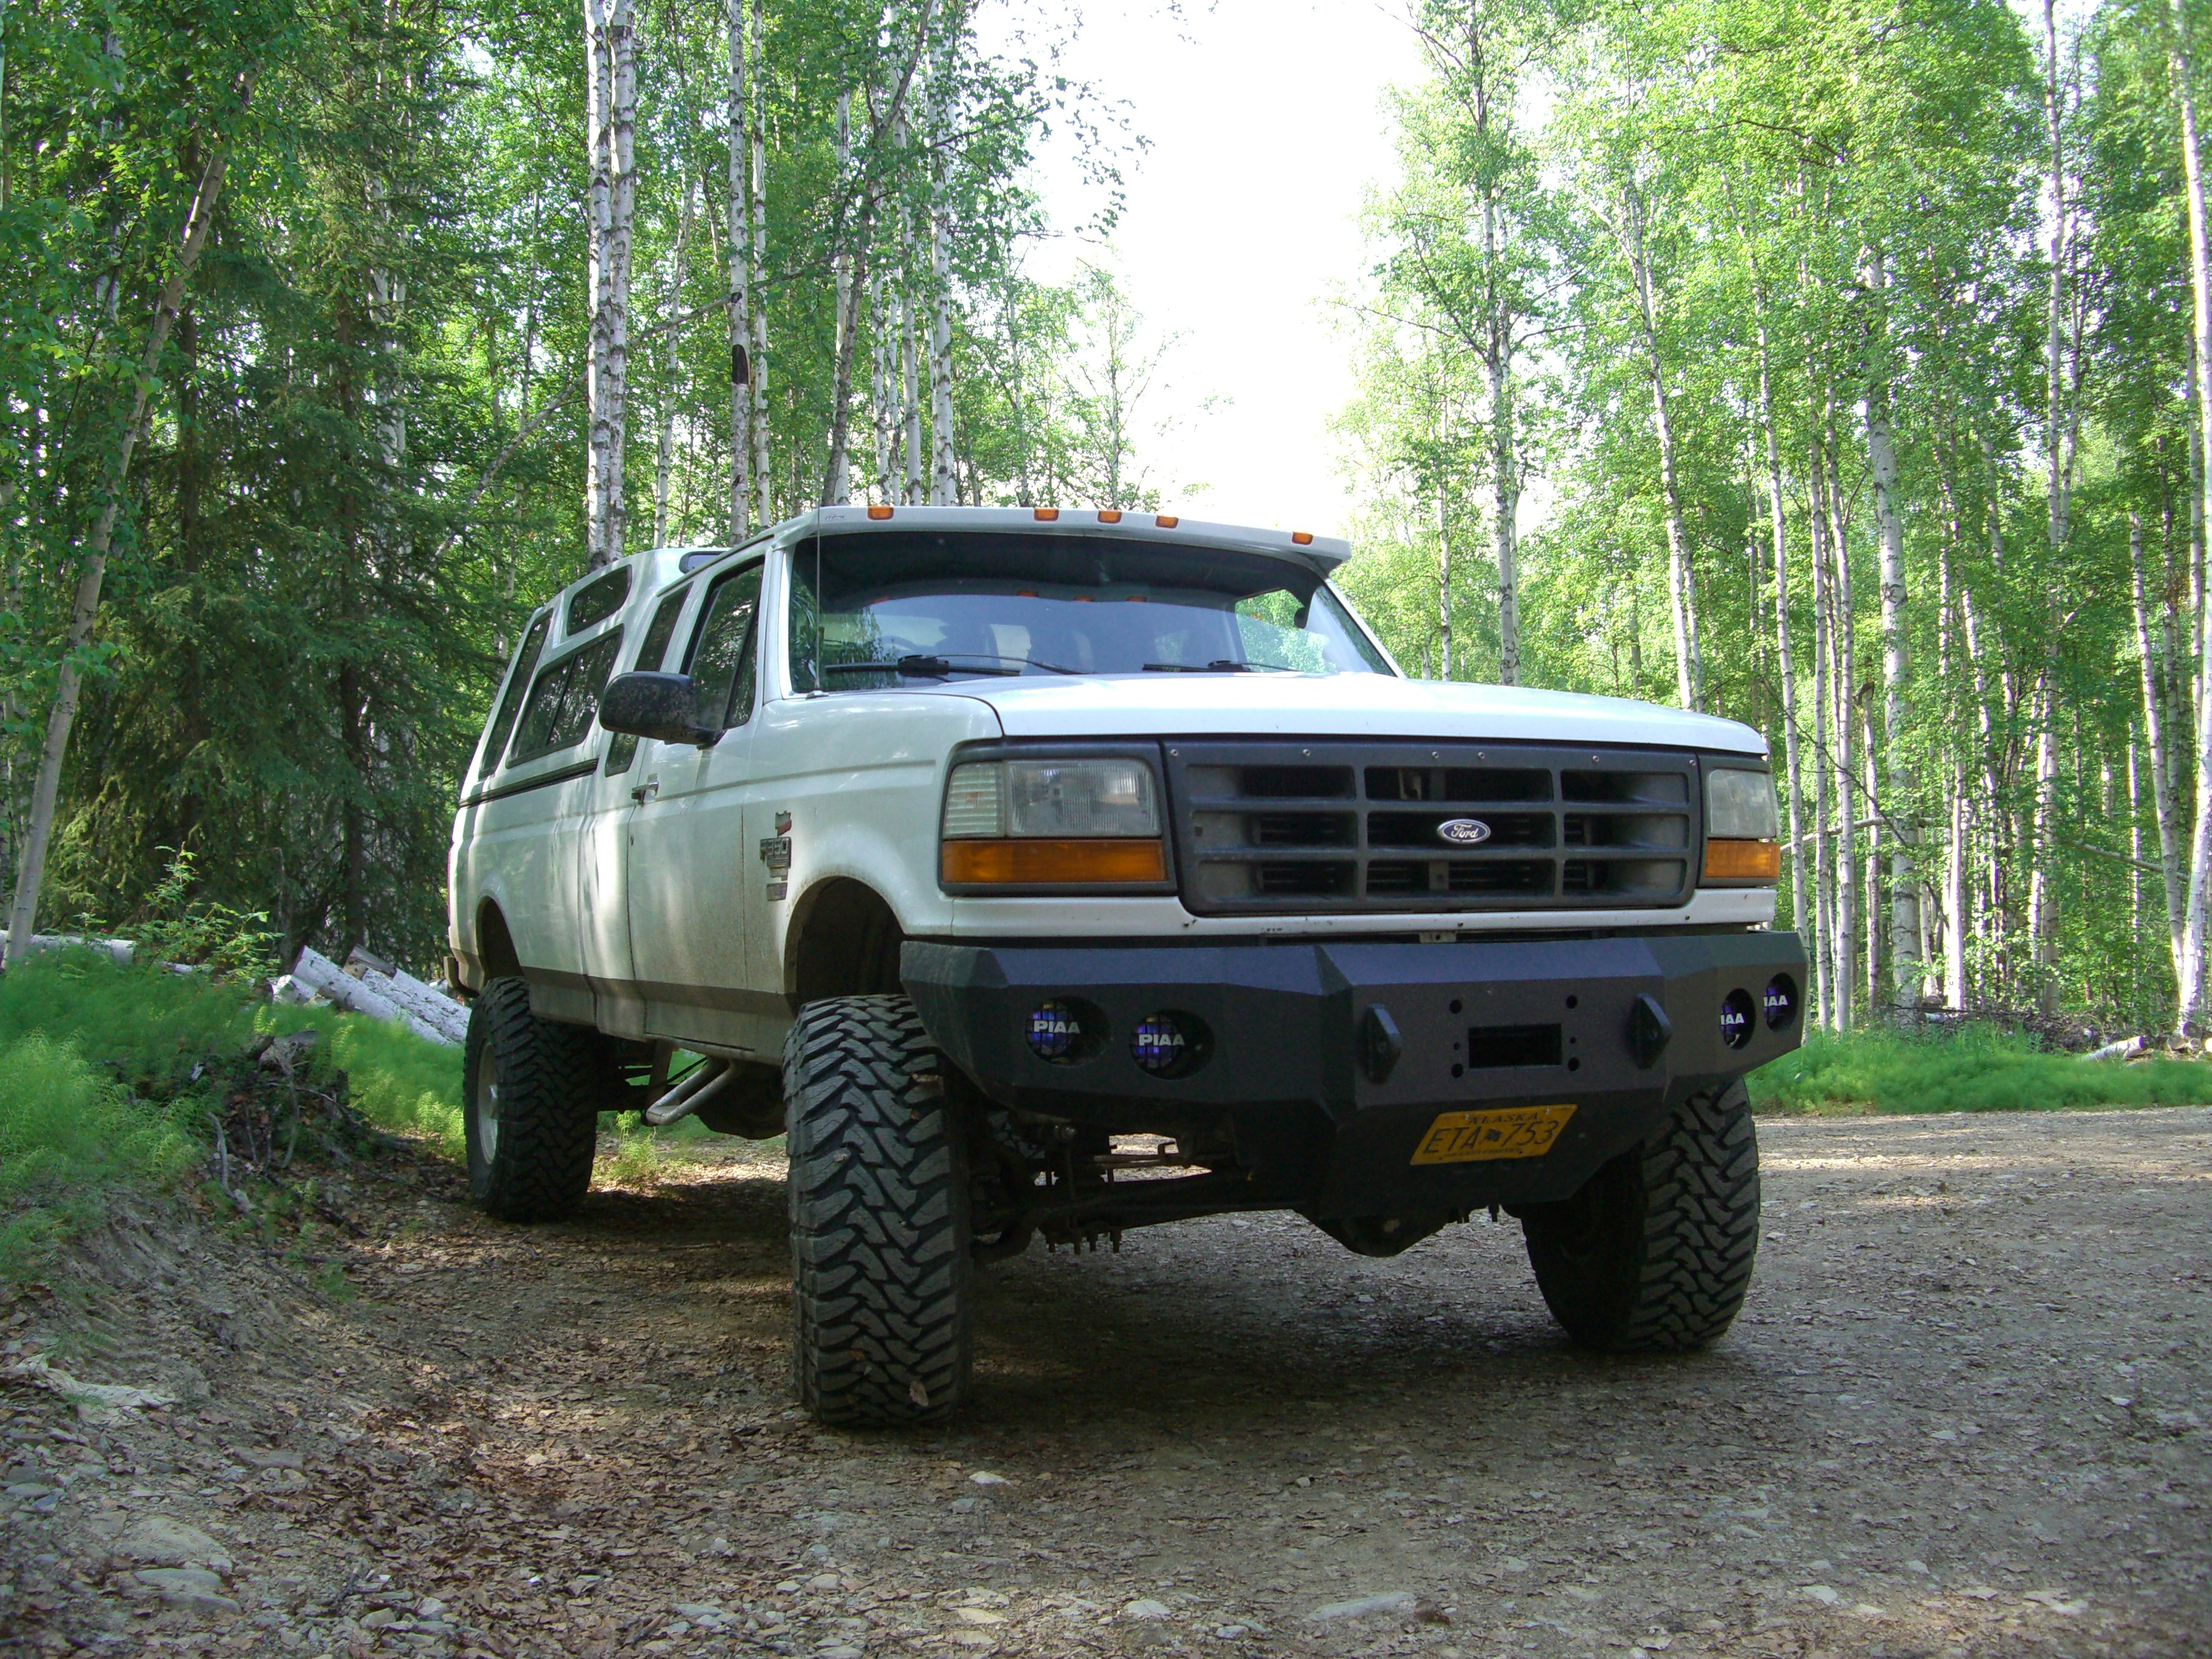 92 96 ford f250 front base bumper